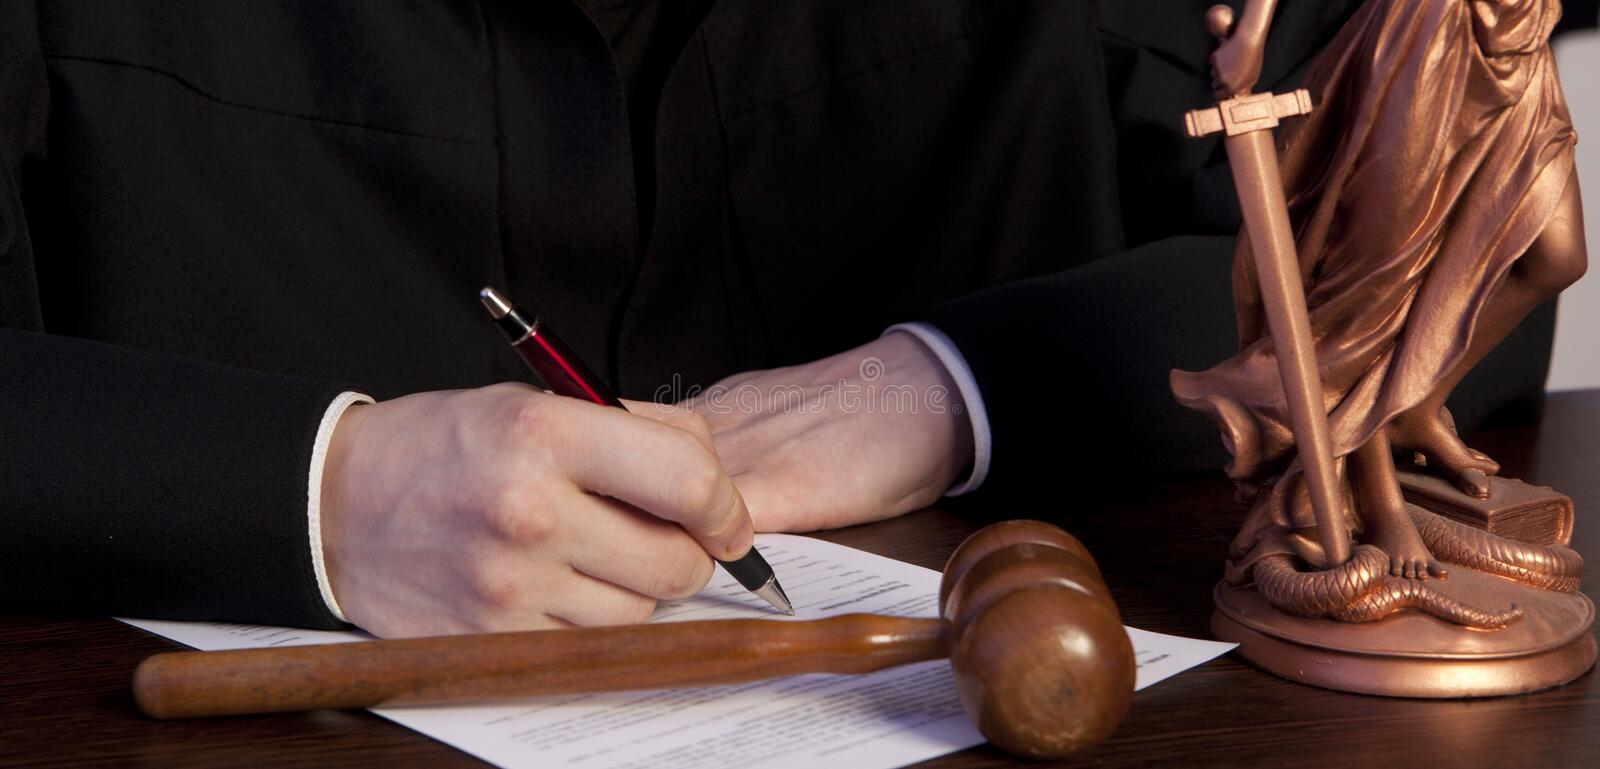 Male judge in a courtroom striking the gavel royalty free stock photo